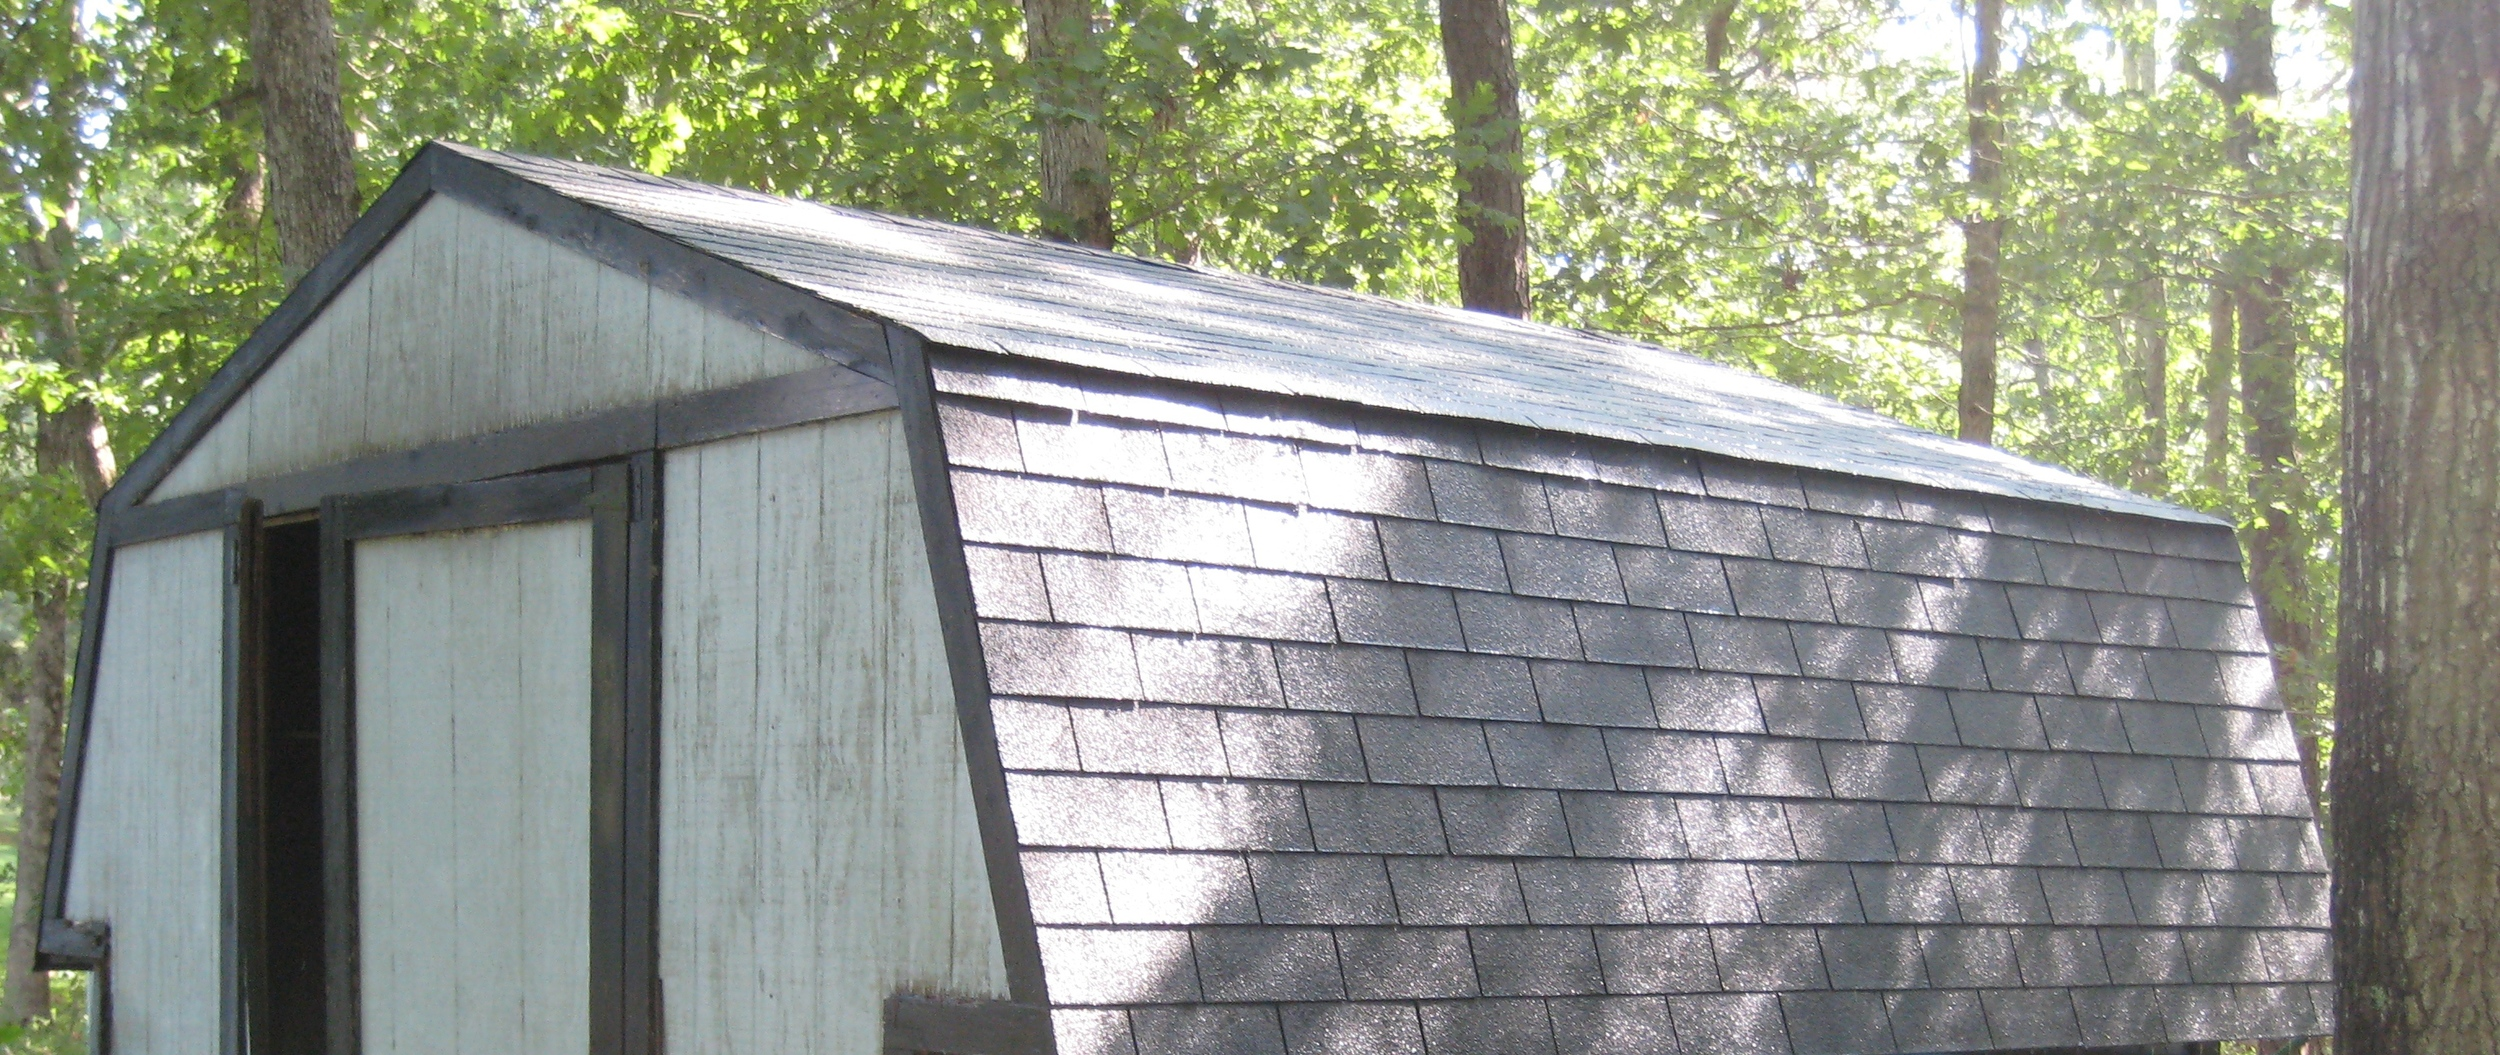 8a roof cleaning pic.JPG